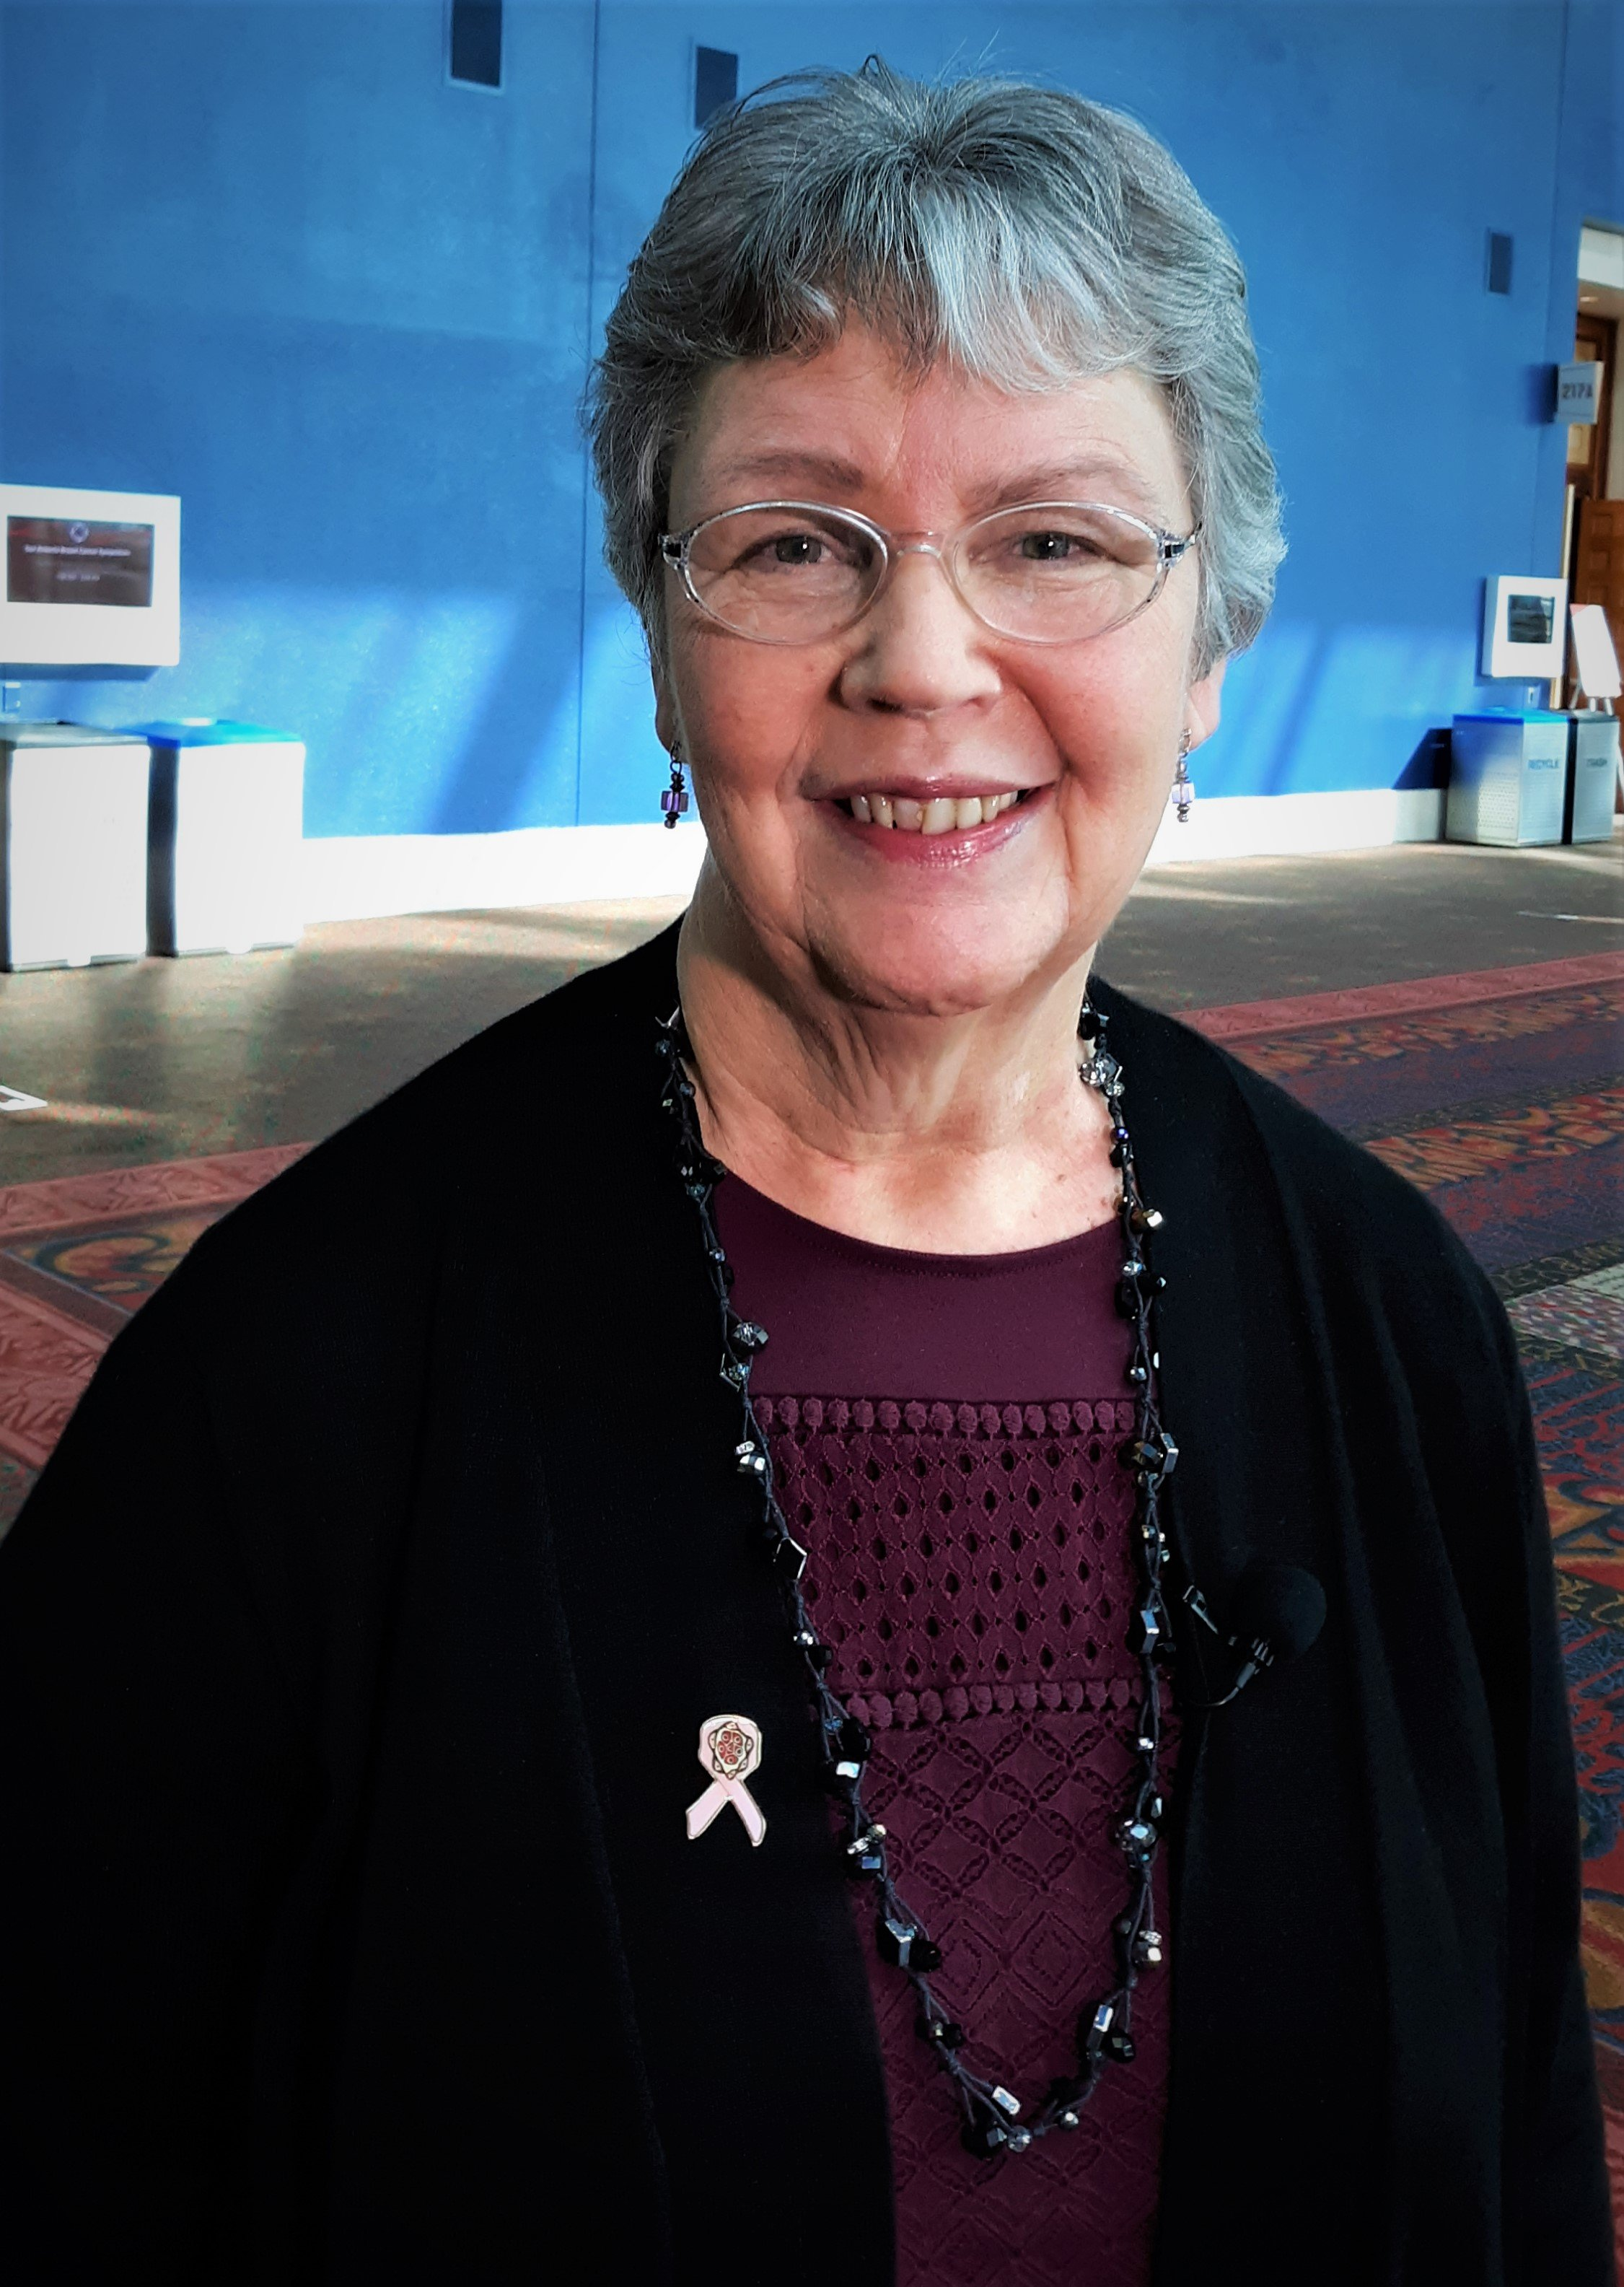 Cancer survivor Ginny Mason, head of the Inflammatory Breast Cancer Research Foundation